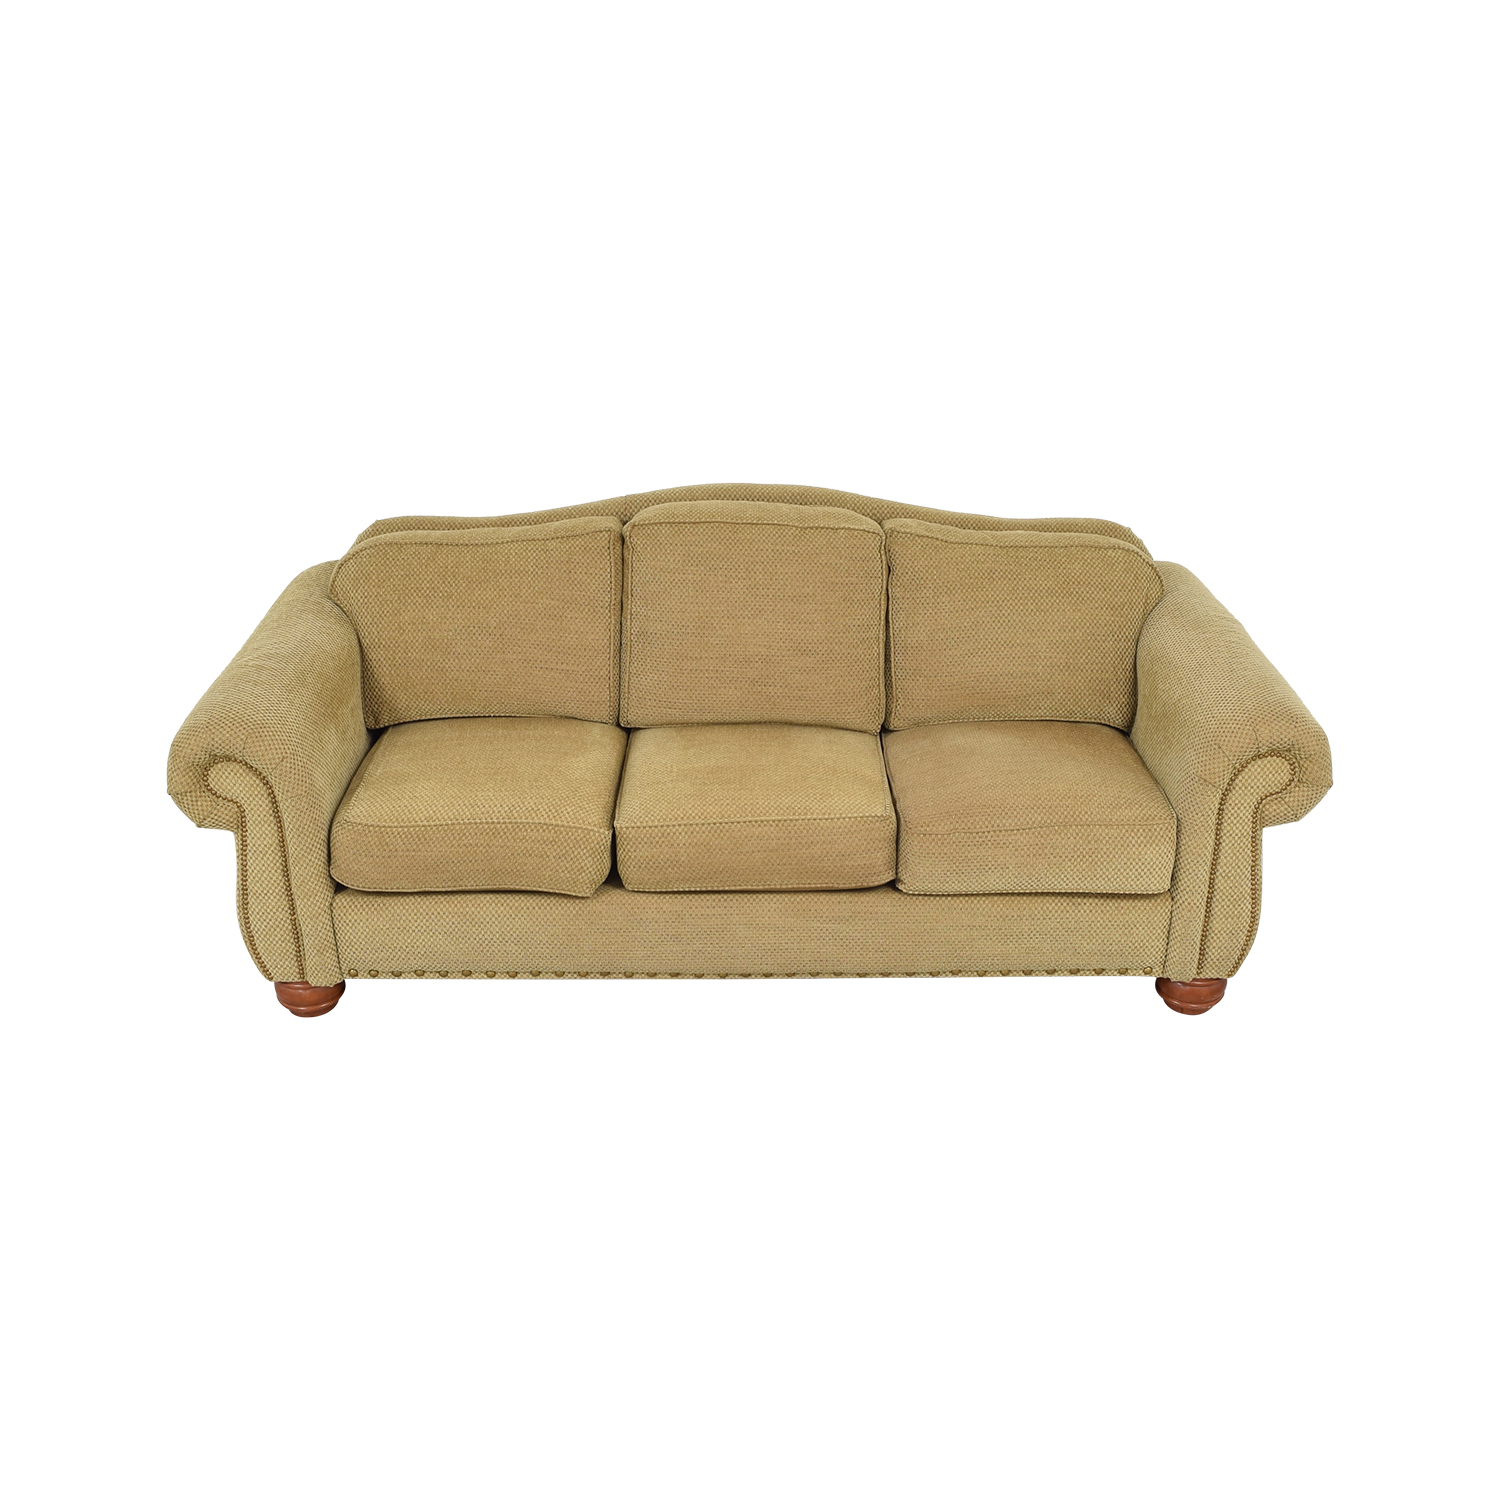 La-Z-Boy La-Z-Boy Three Cushion Sofa